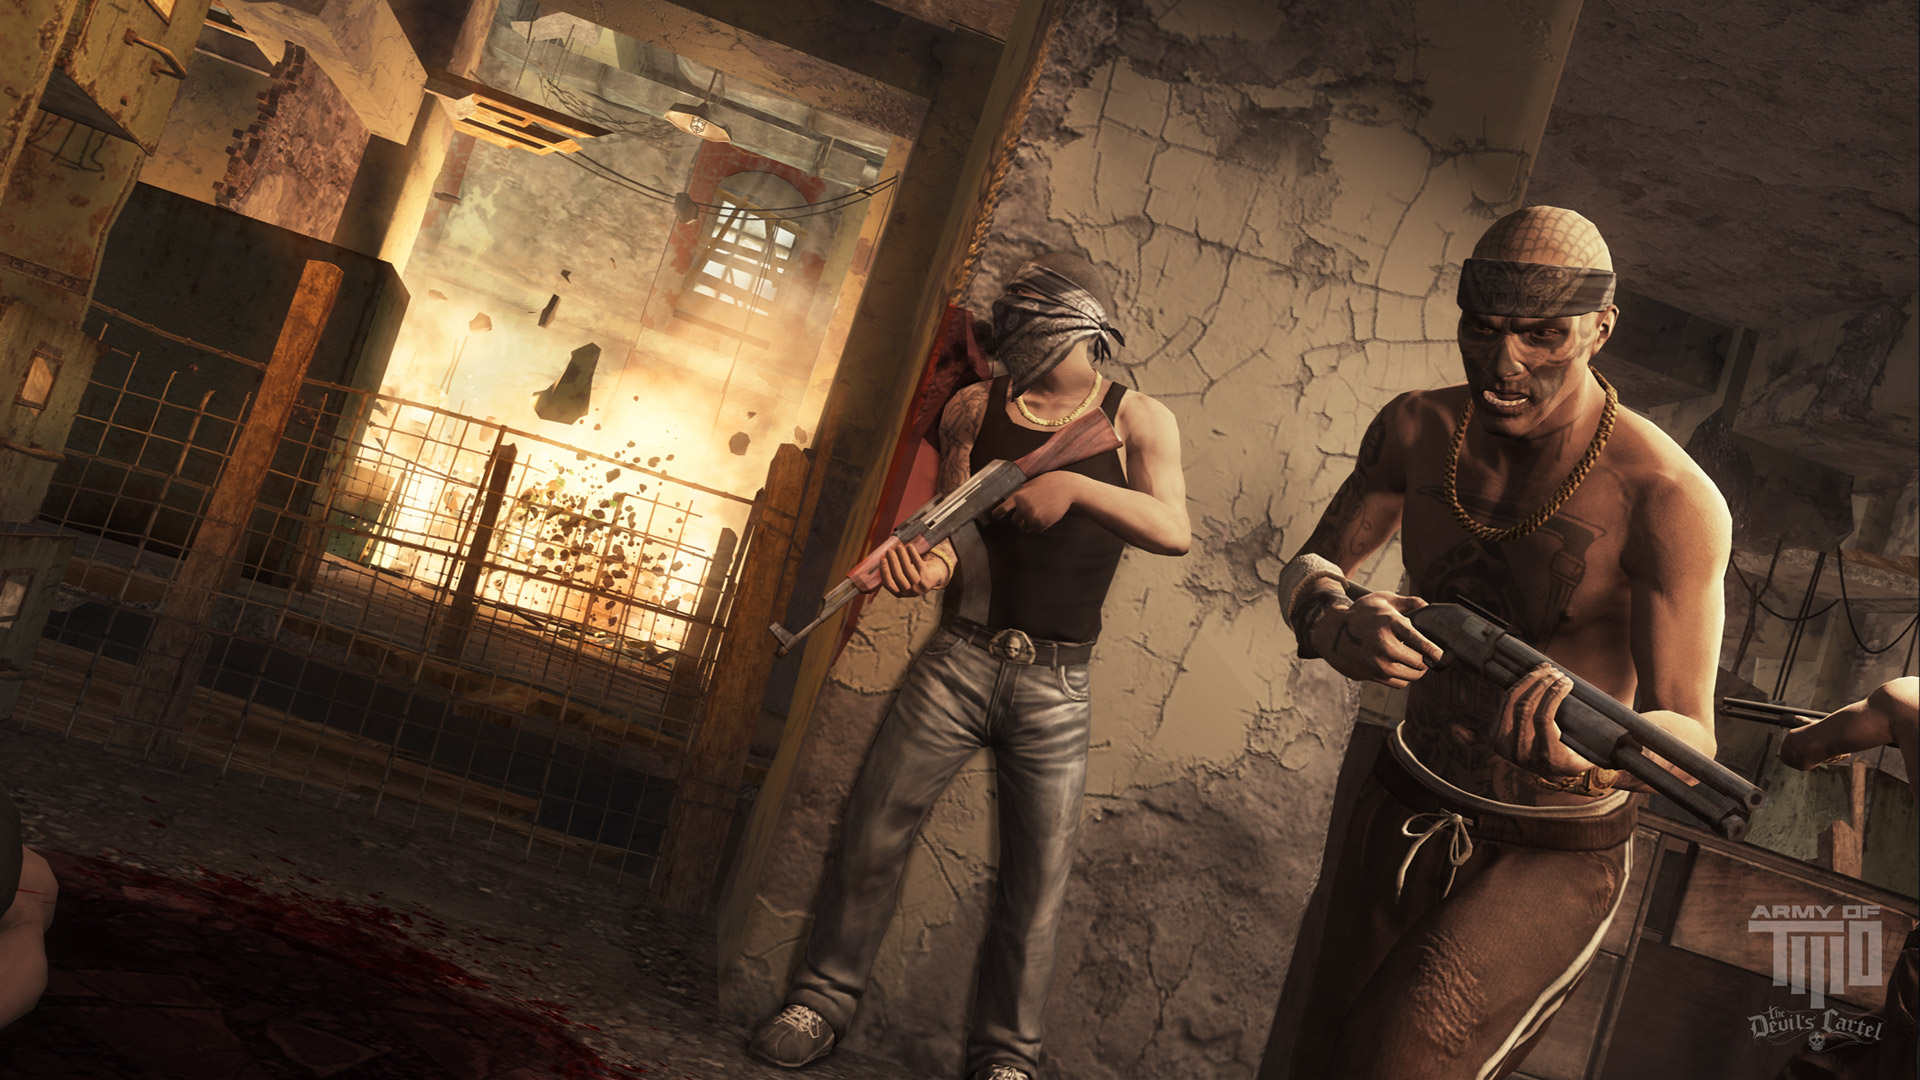 Army of Two Devils Cartel wallpaper 6